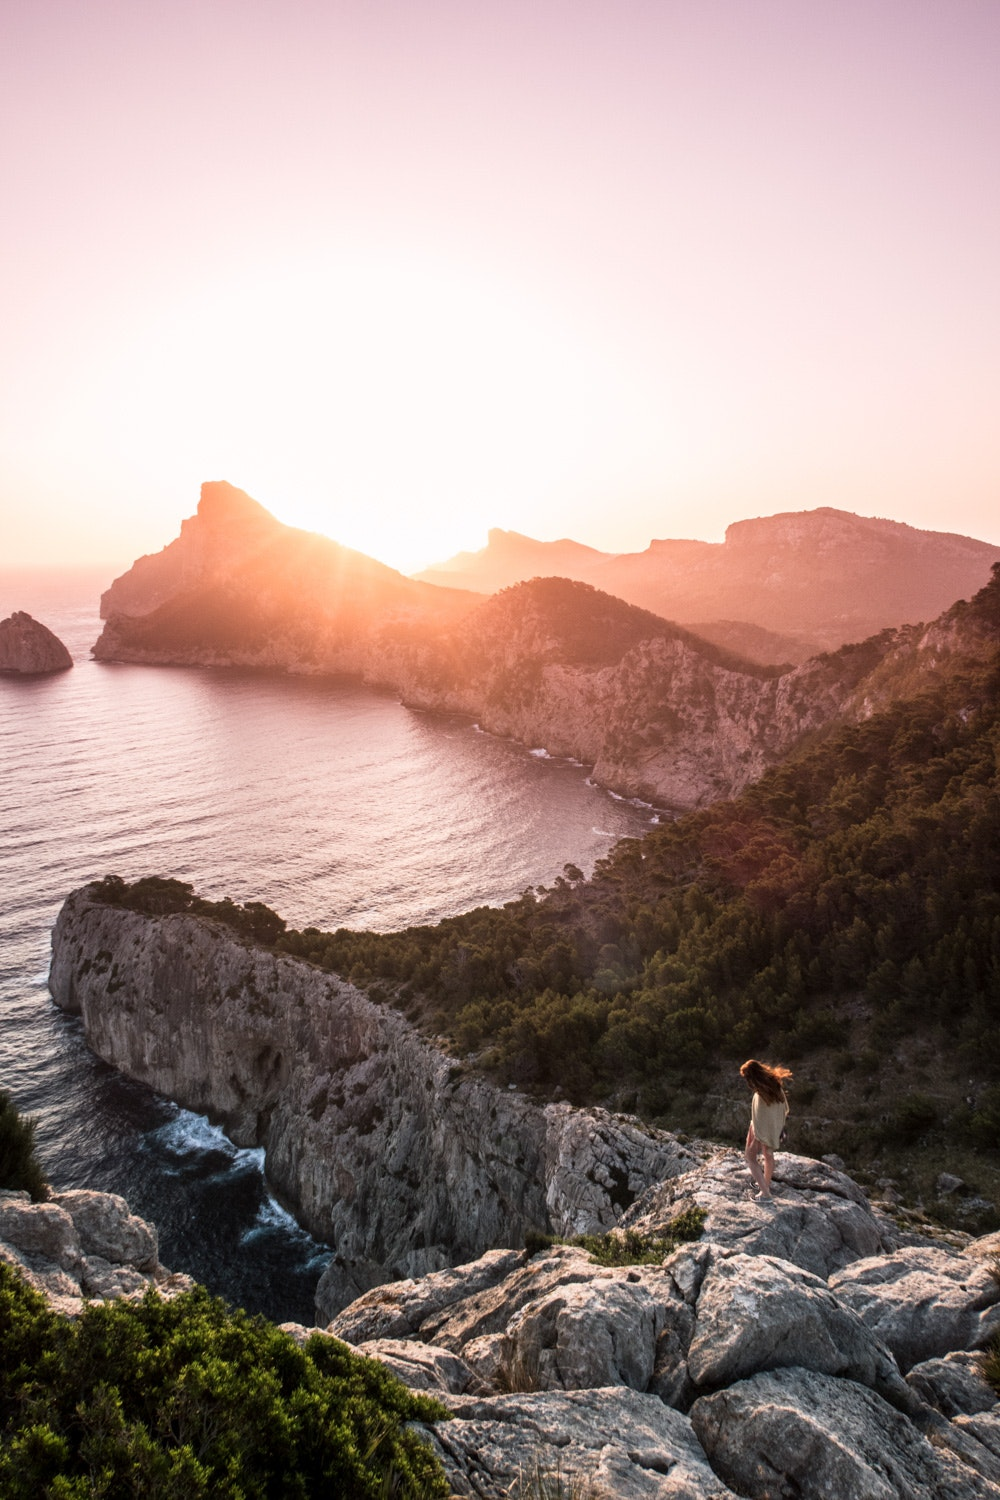 Rudya isn't normally an early riser, but this sunrise walk on the Spanish island of Mallorca was well worth it.